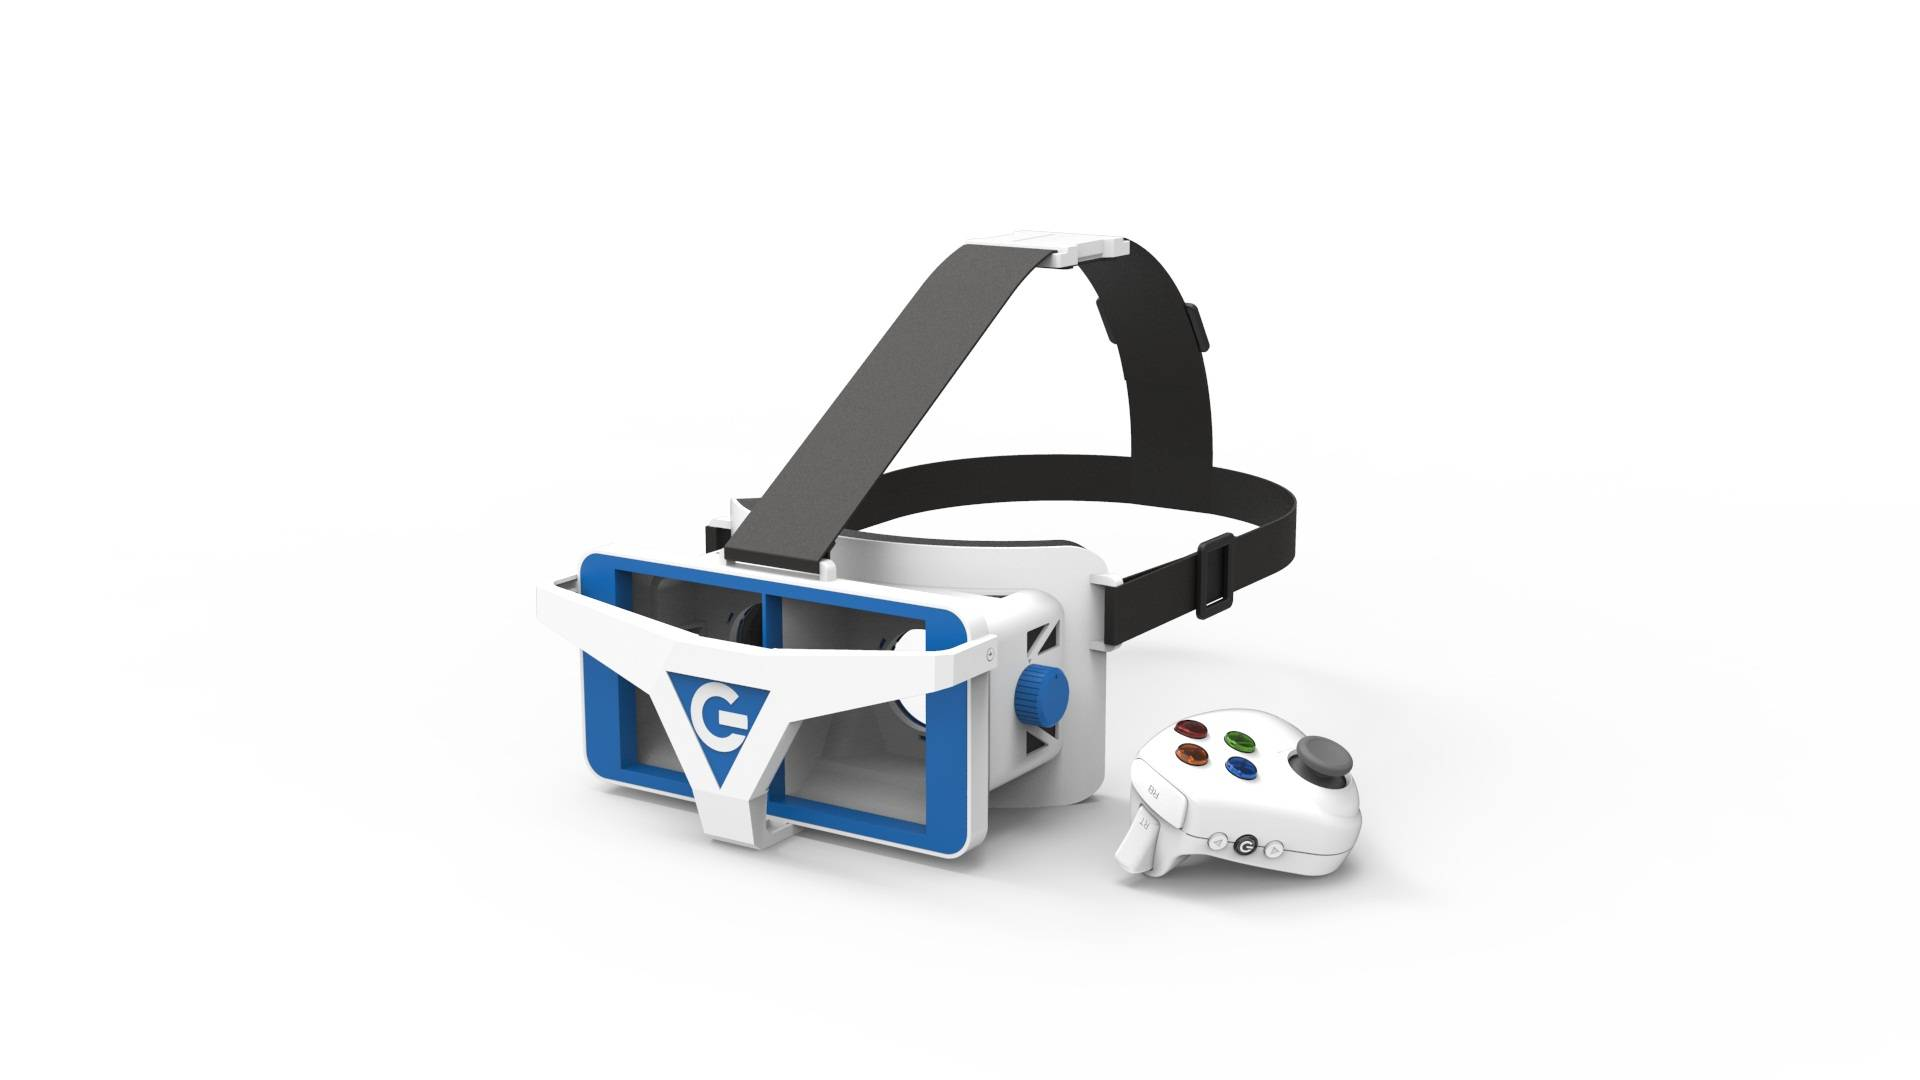 Newest vr glasses 3D vr headset display with immersive technology for vr games and entertainment wit